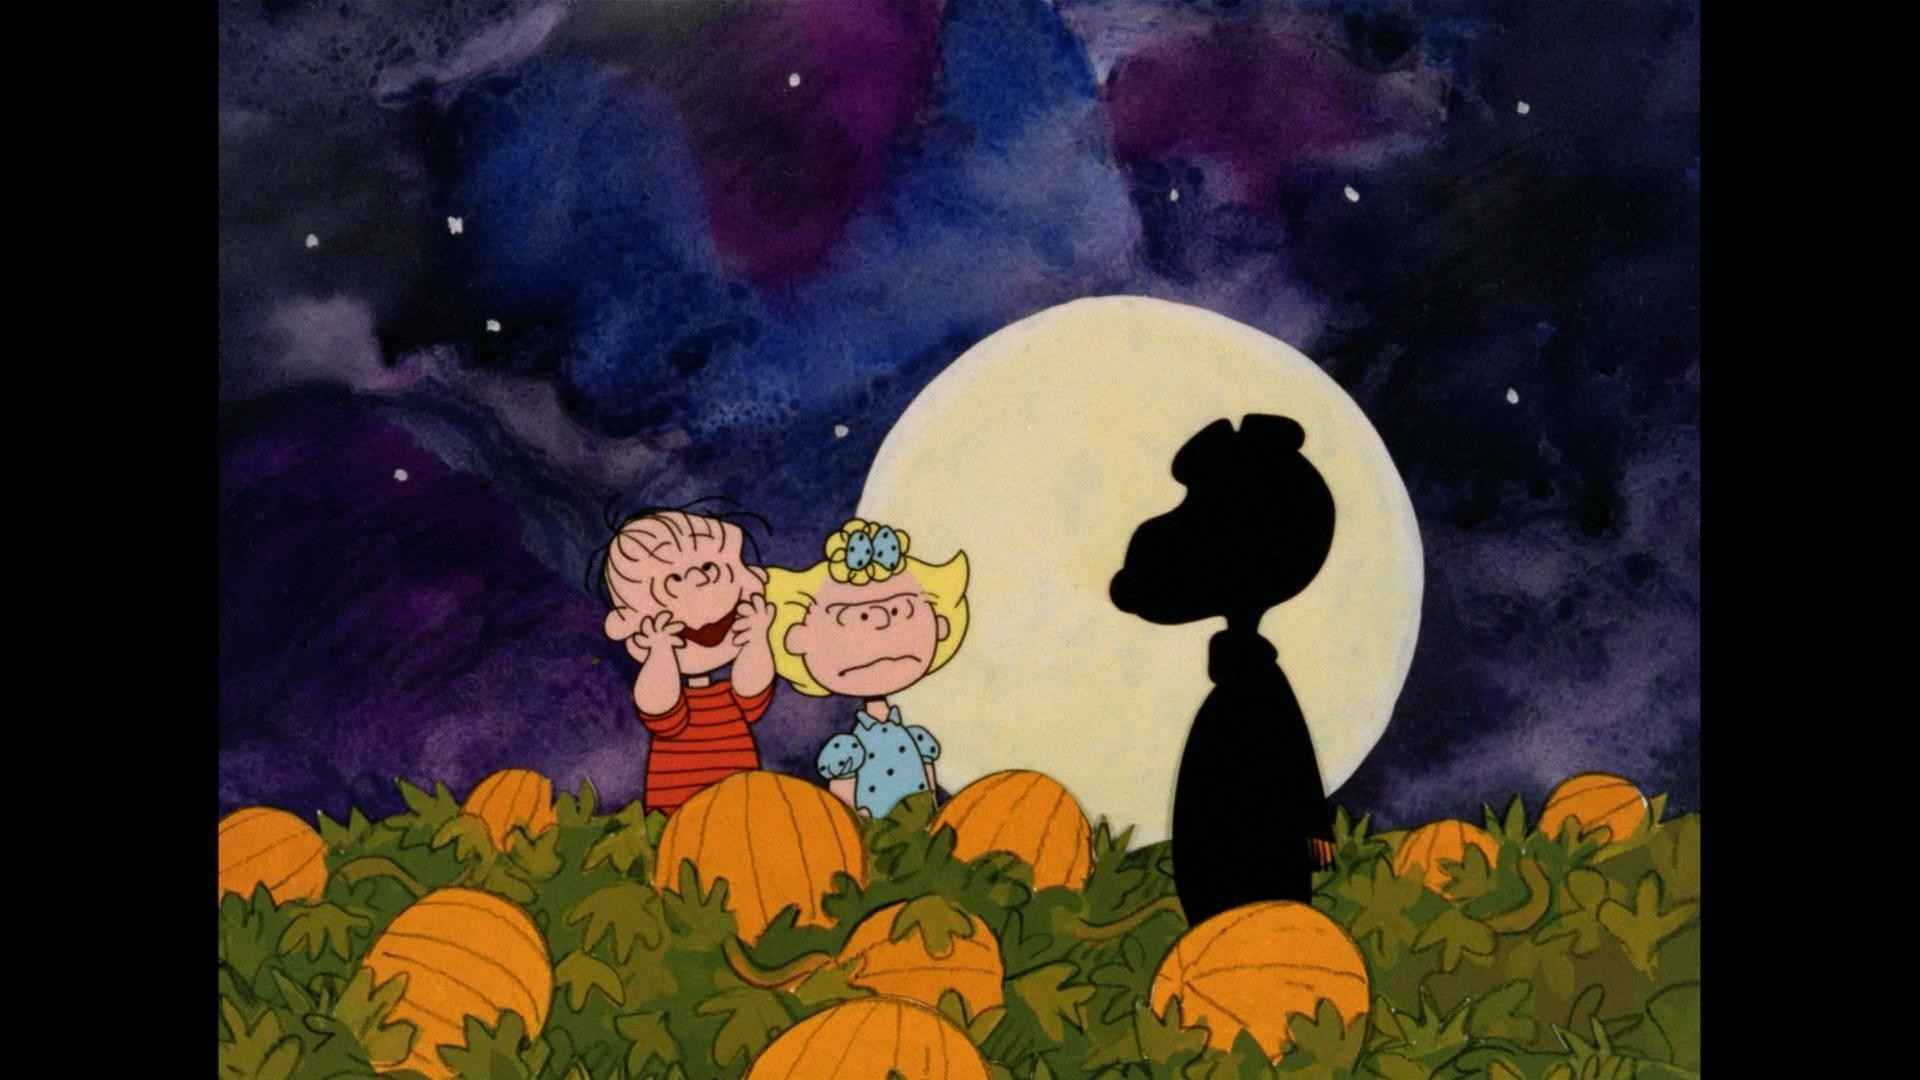 charlie brown screensavers and wallpaper (44+ images)